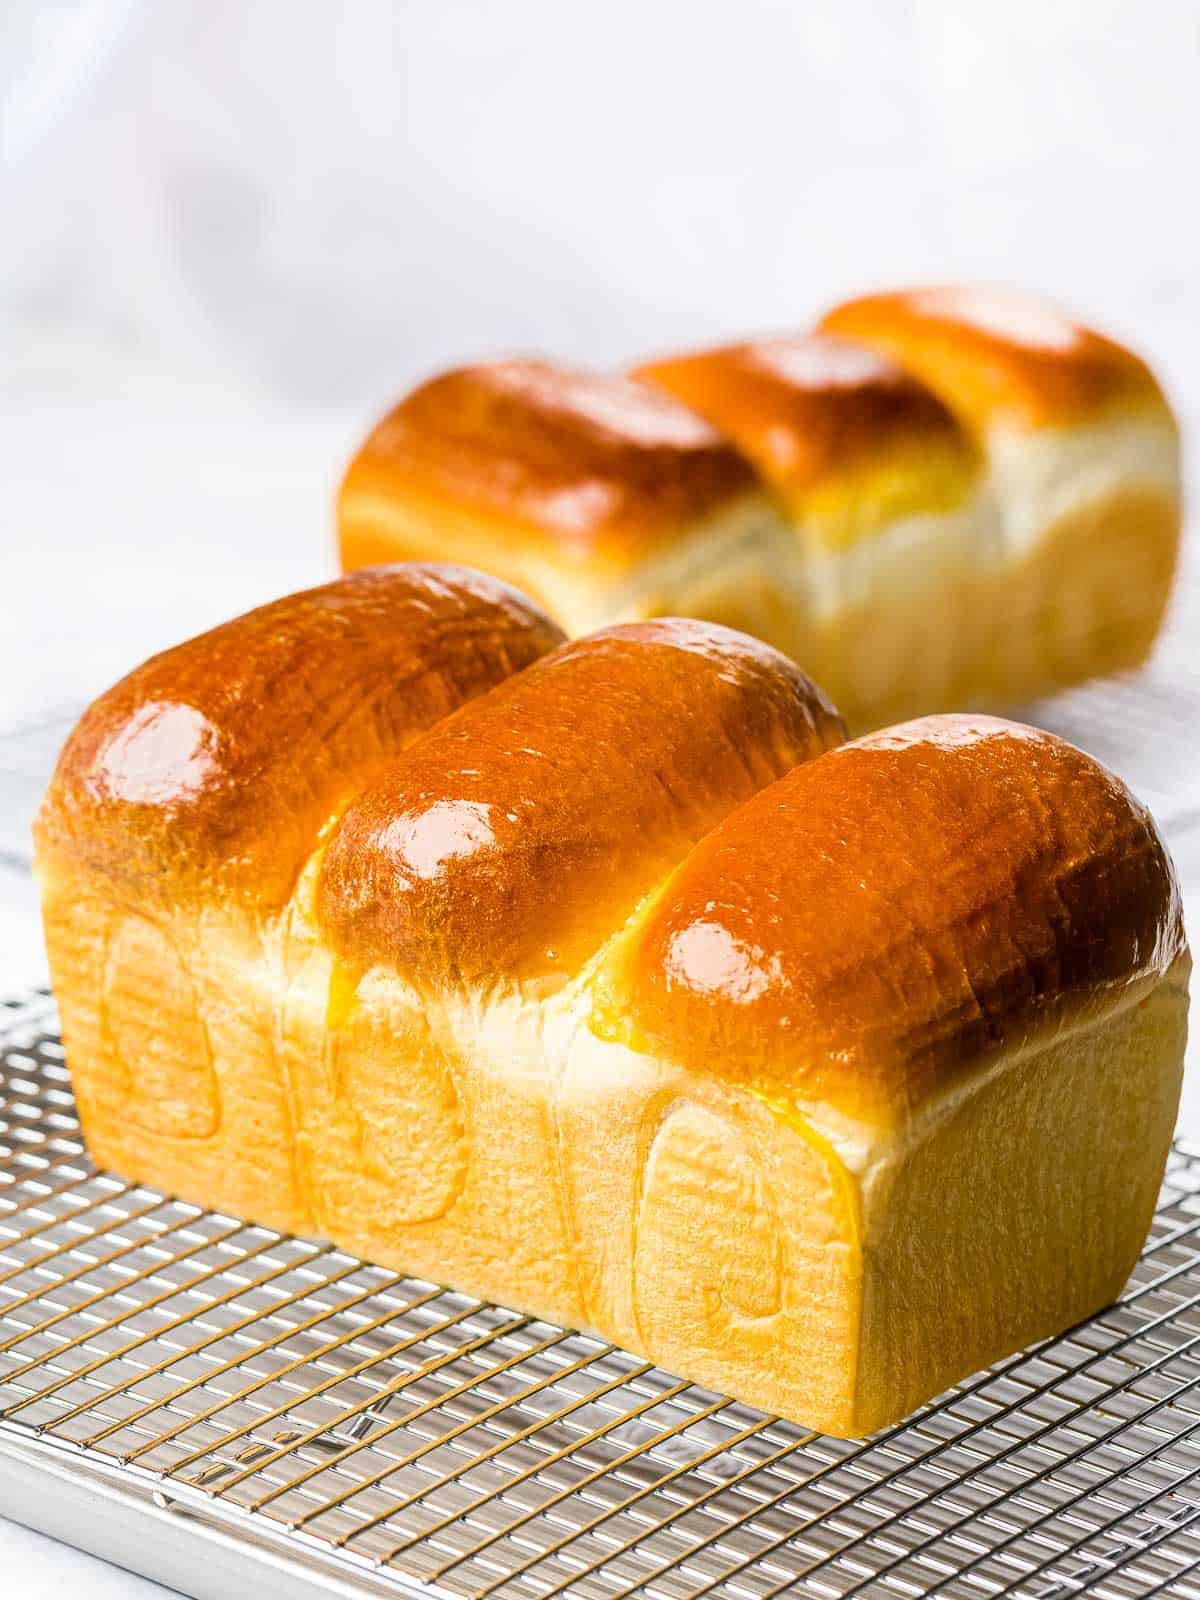 Homemade Asian milk bread loaves with golden brown crust on a cooling rack.